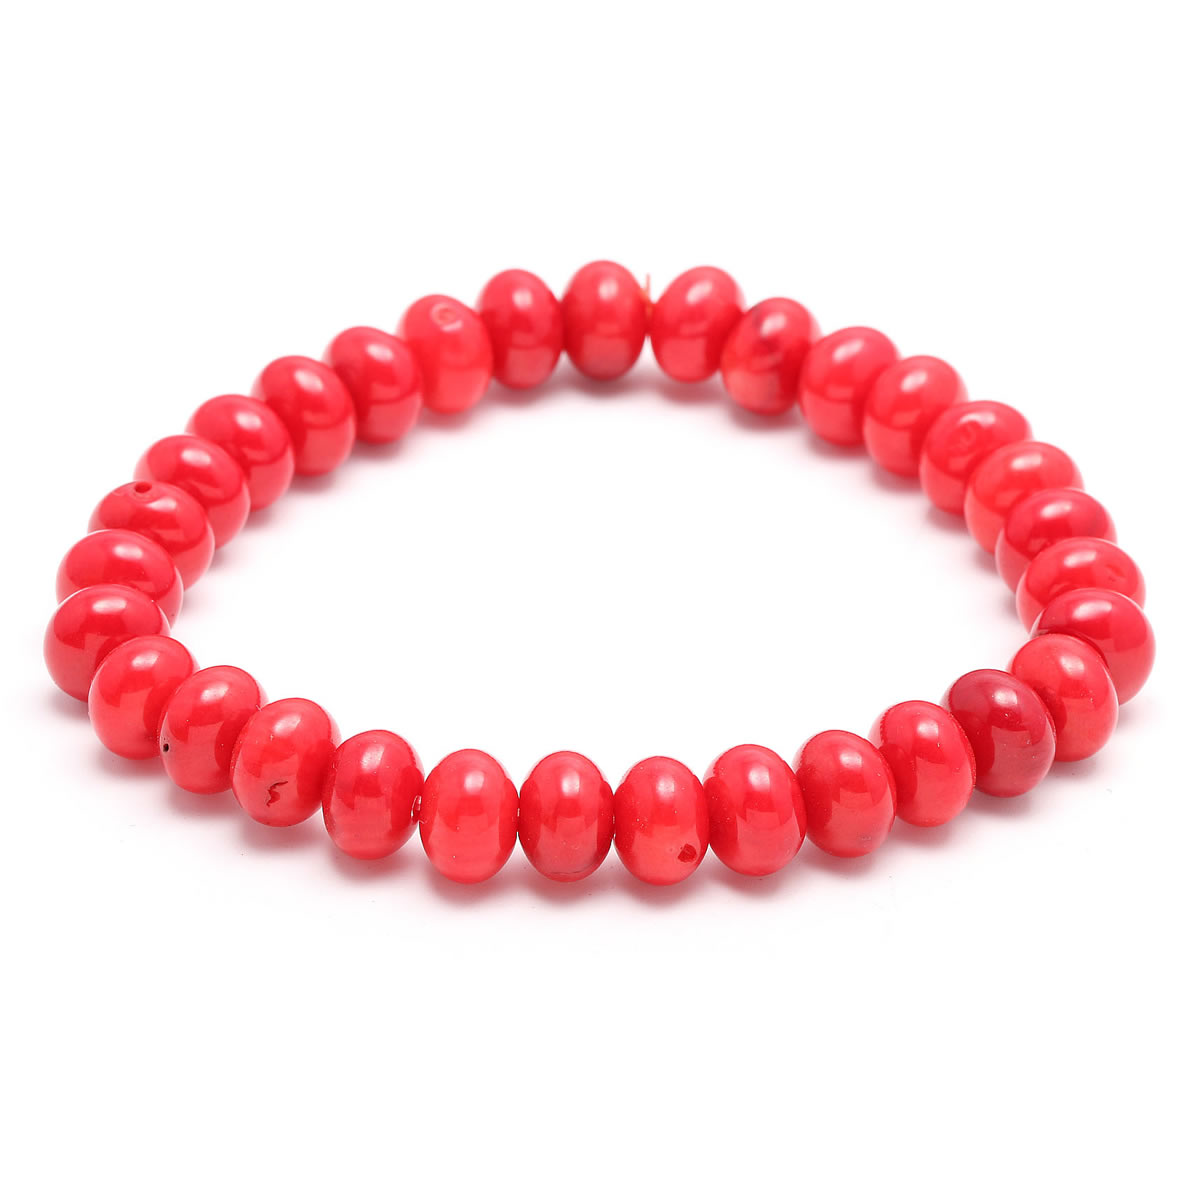 Wholesale New Hot Coral Stone Beads Bracelets Bangles for Women Charms Jewelry 5 Shapes Natural Coral Beaded Bracelet Gift 18cm in Strand Bracelets from Jewelry Accessories